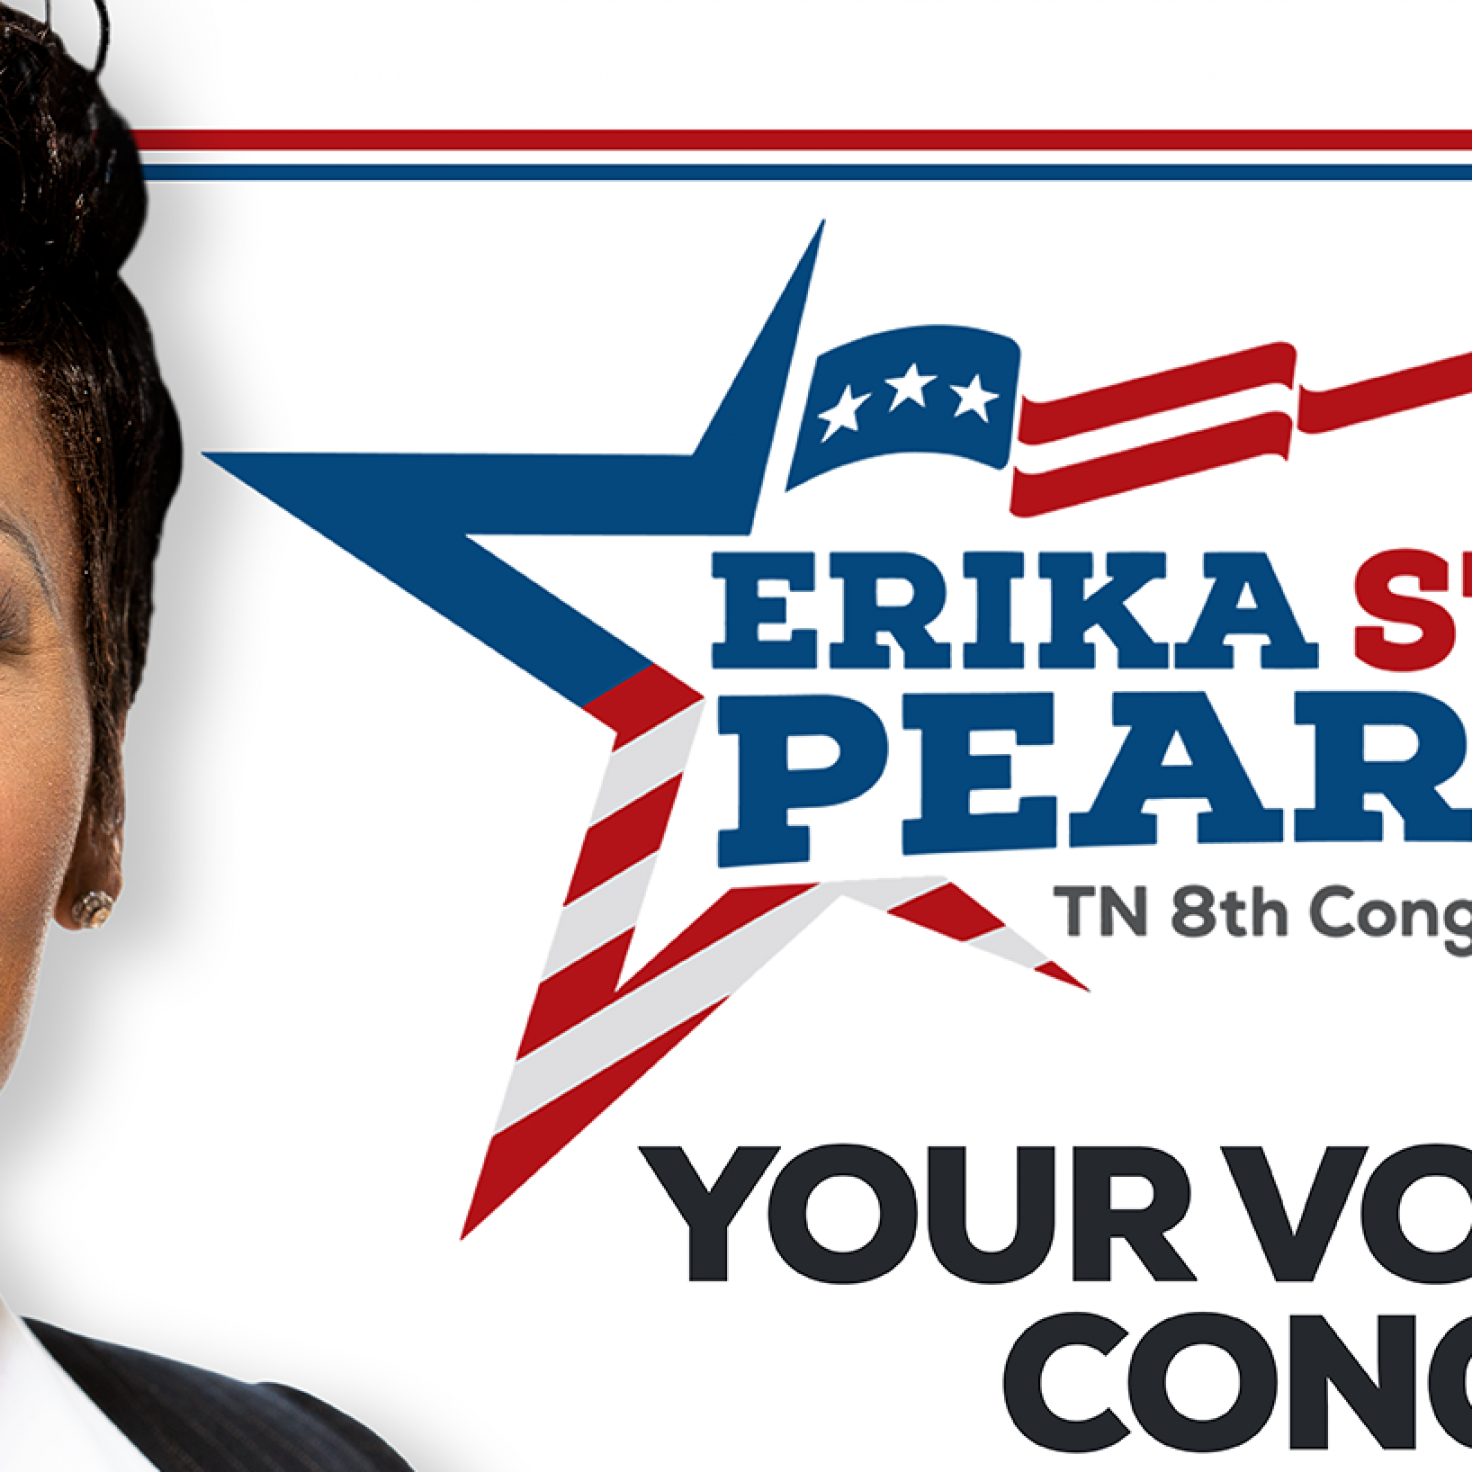 Erika Stotts Pearson Takes On Tennessee's 8th Congressional District Once Again